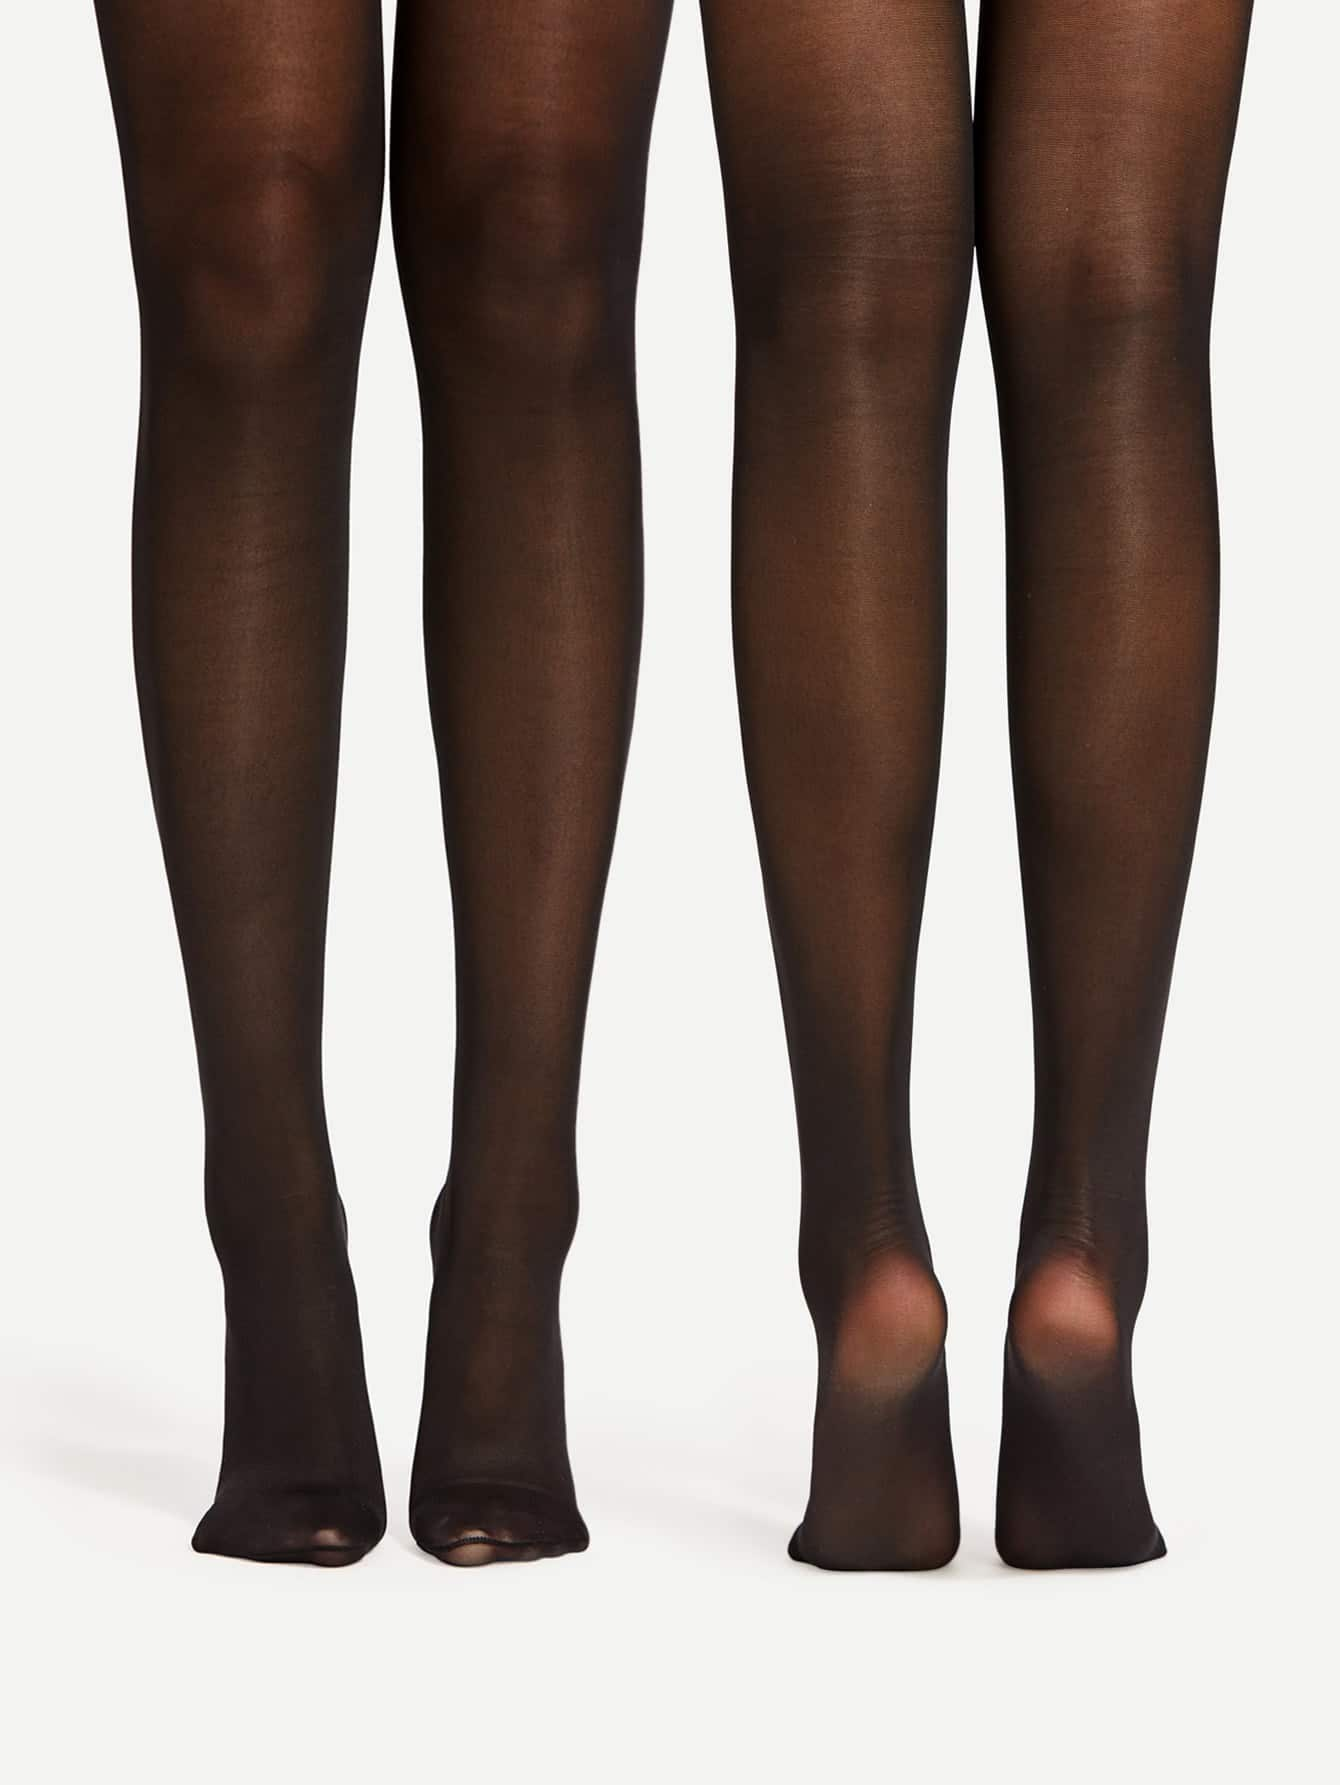 Image of 40D Mesh Tights 2pairs